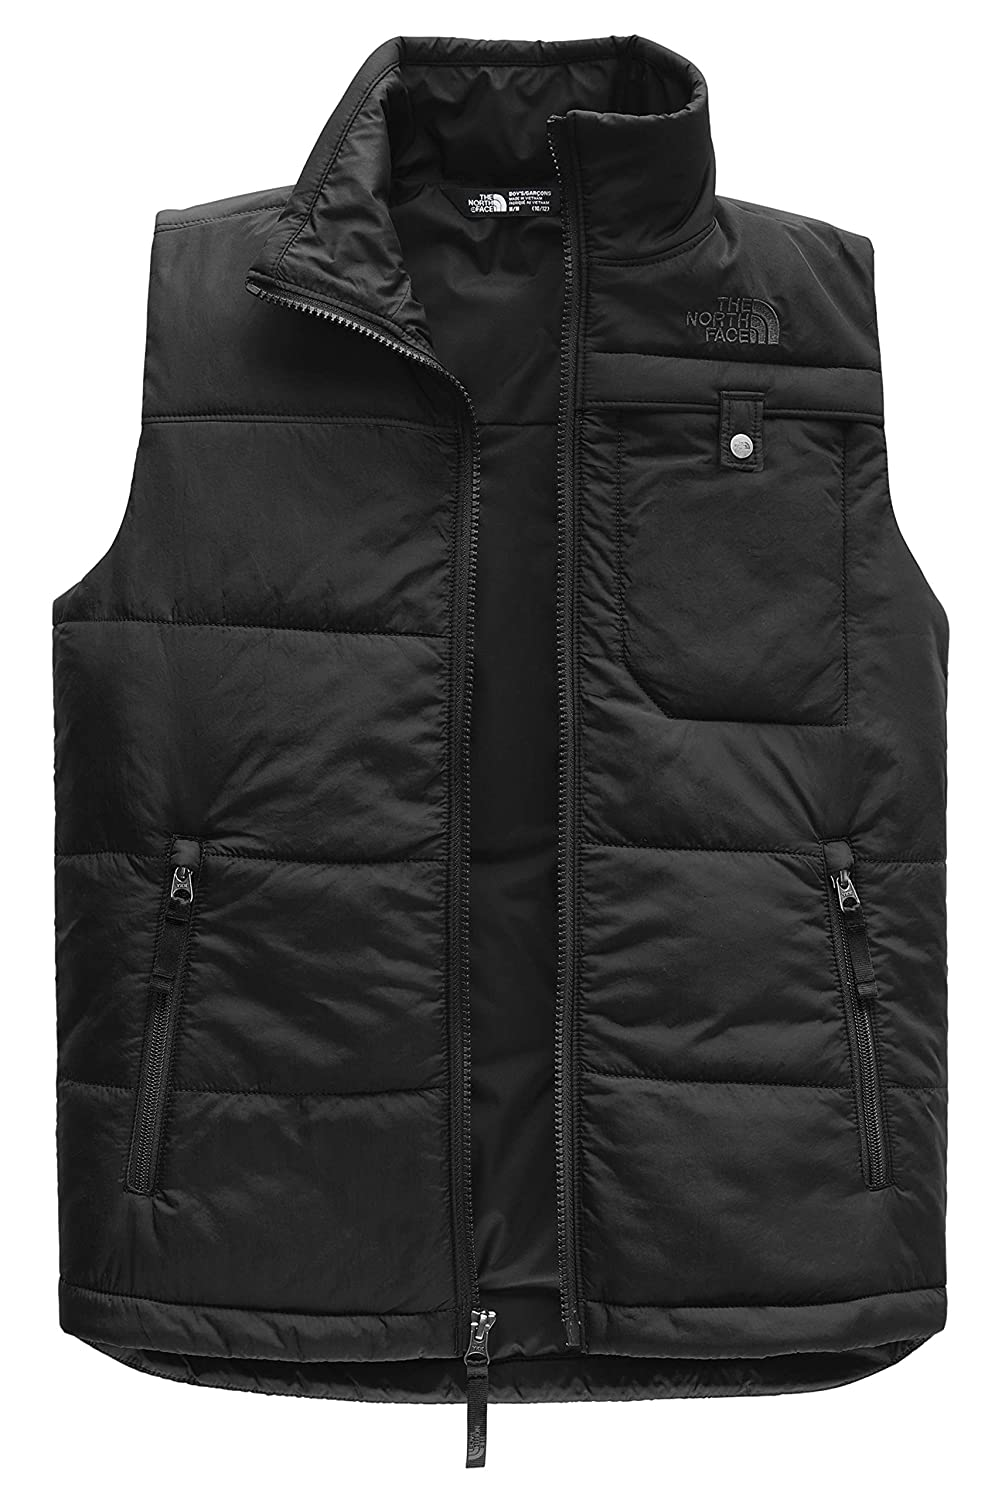 The North Face Boys Harway Vest